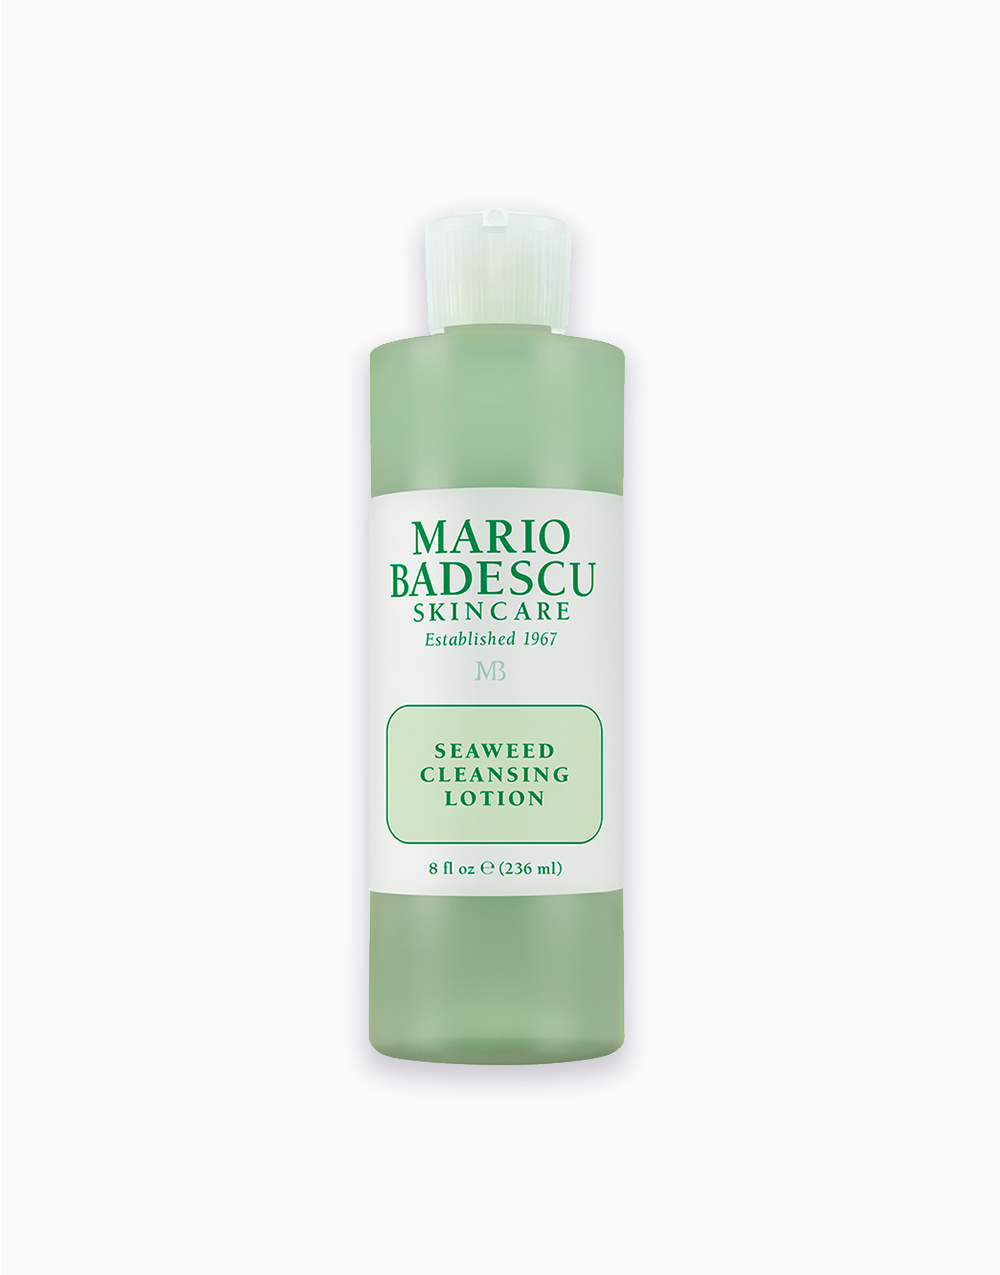 Seaweed Cleansing Lotion (8oz) by Mario Badescu